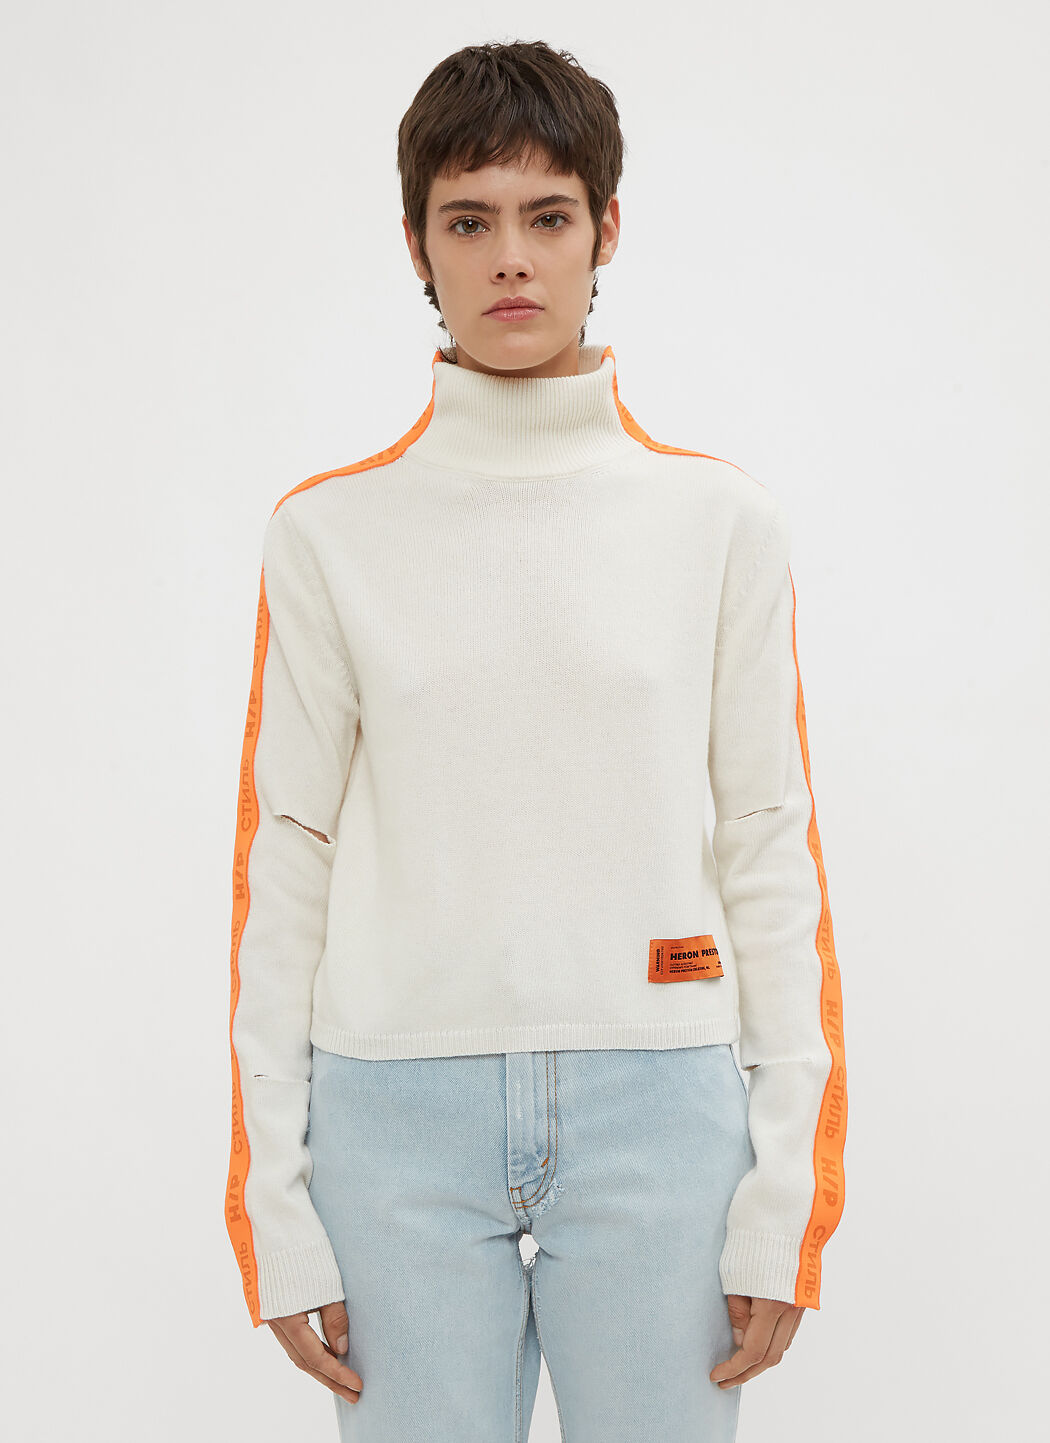 Heron Preston Cropped CTNMB Ribbed Turtle Neck Sweater in White